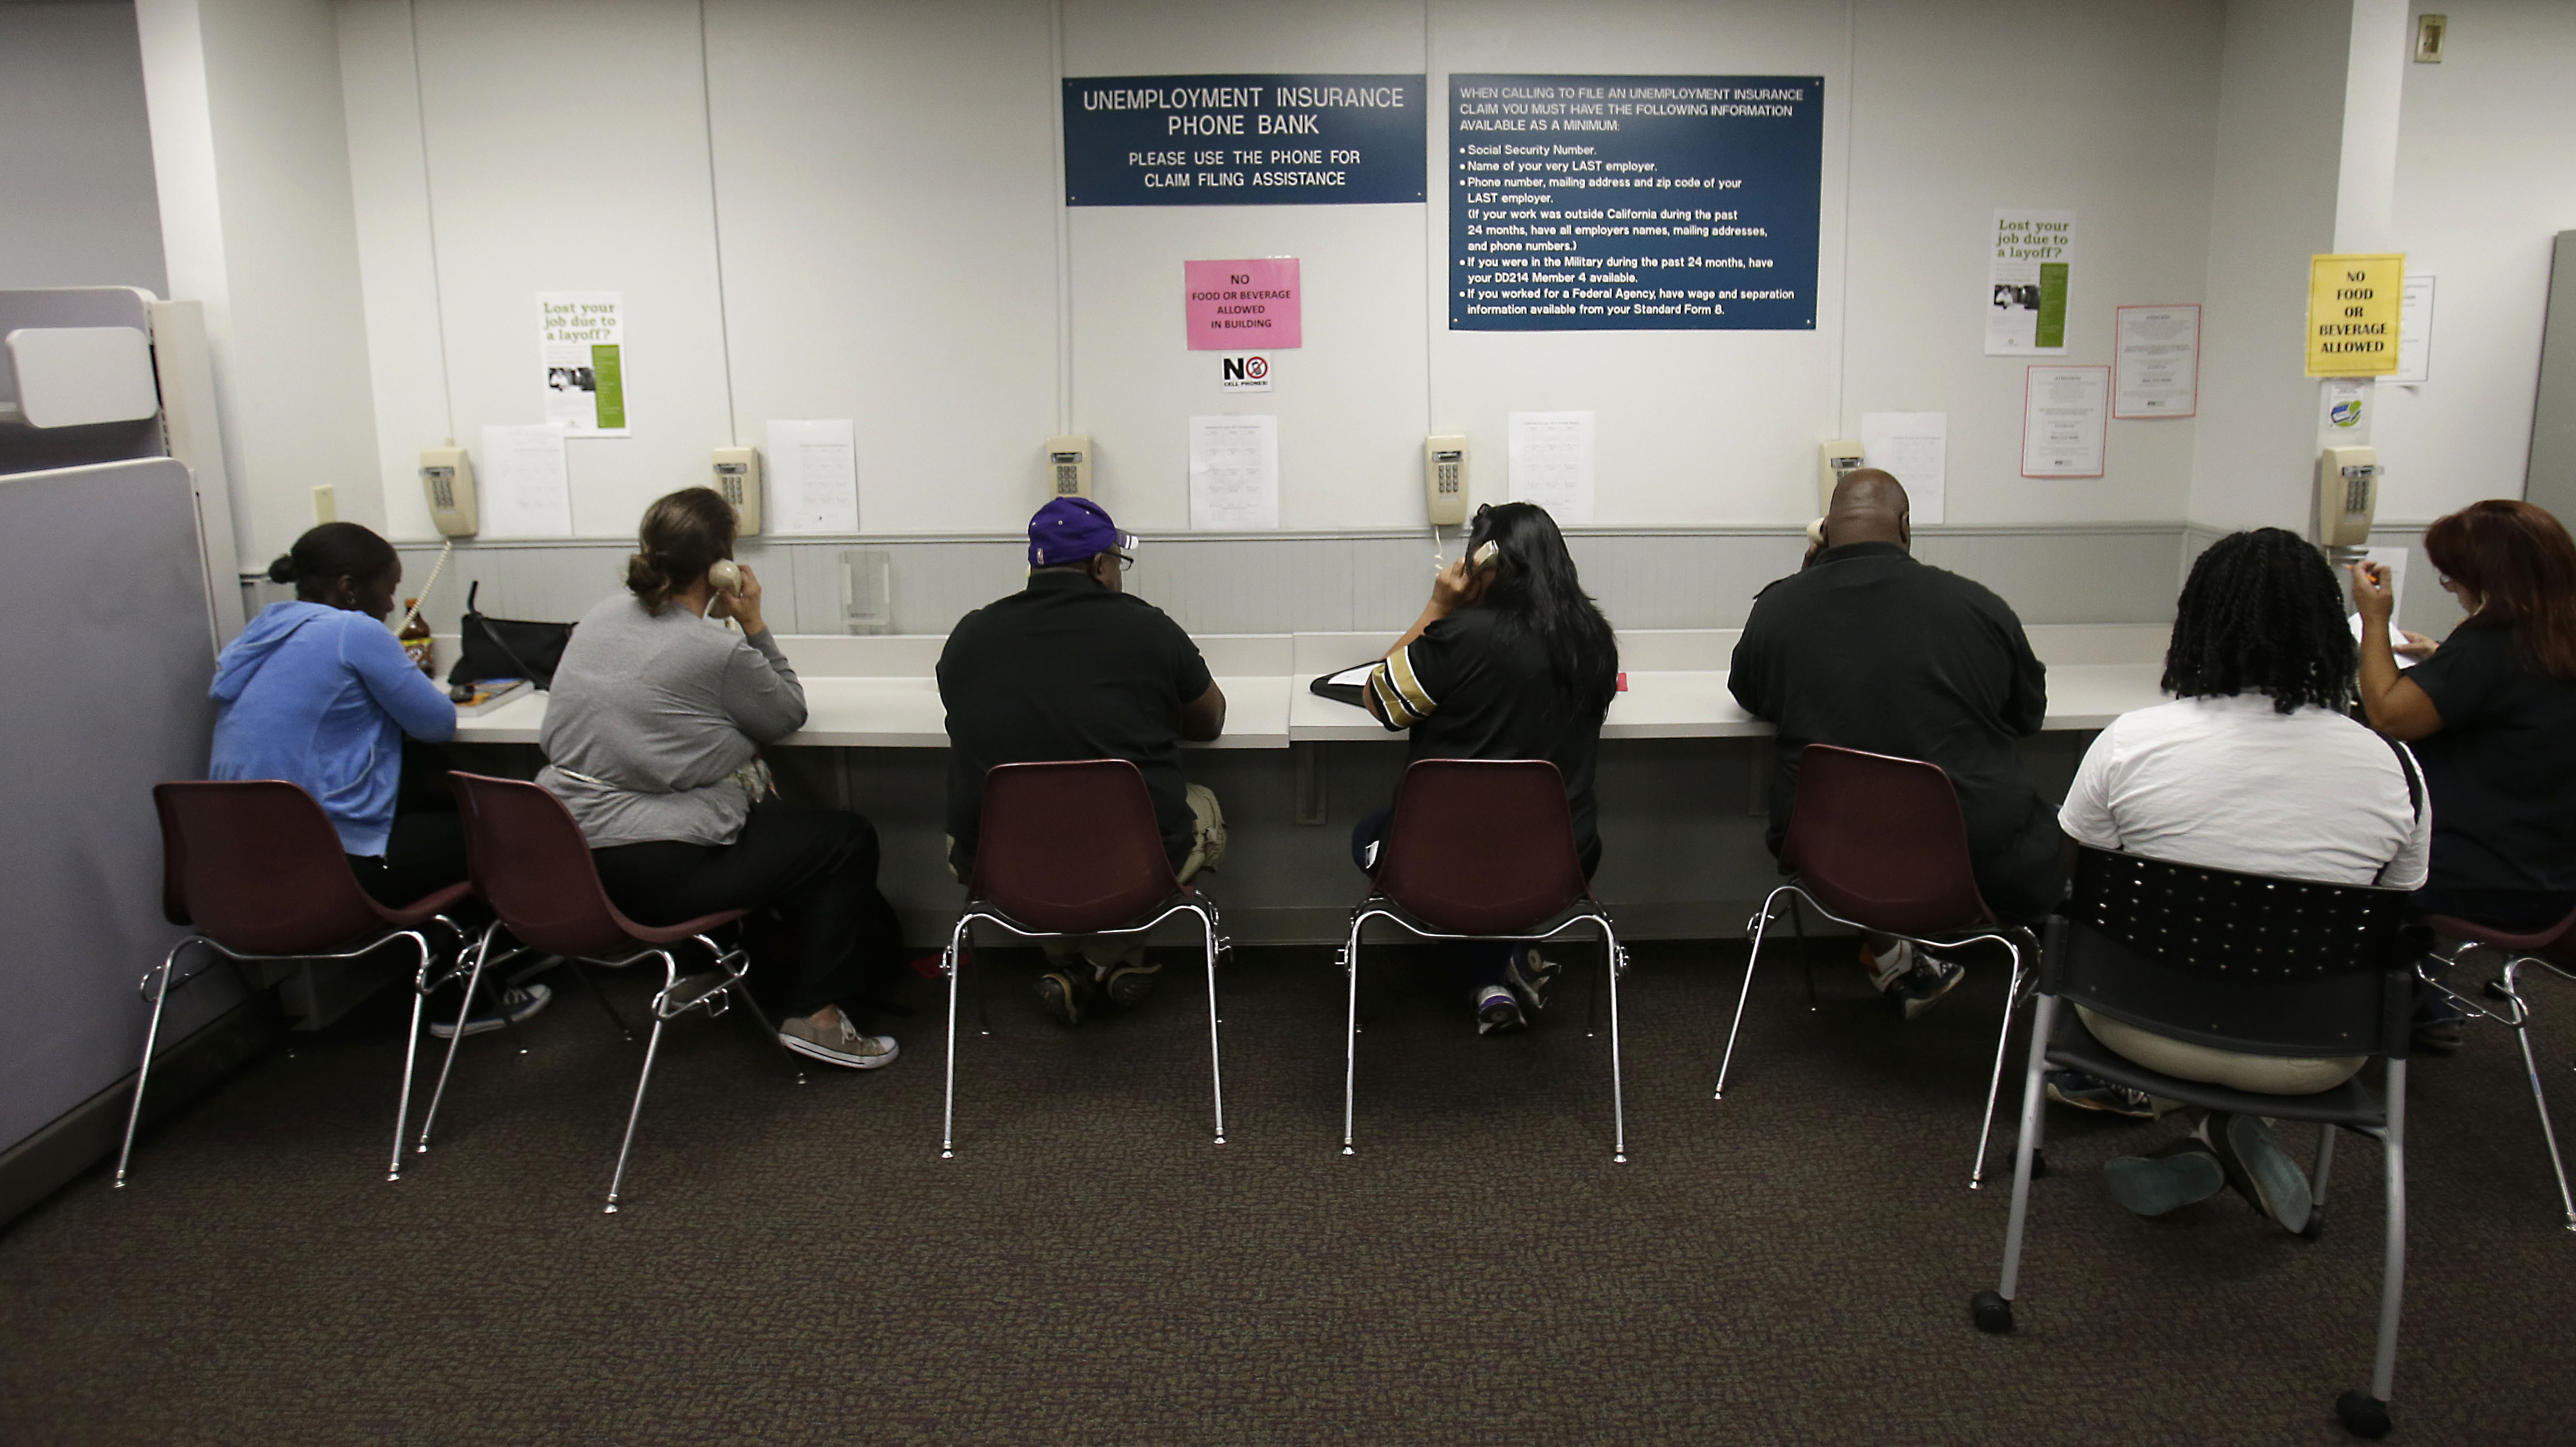 With Benefits Cut, Unemployed Take Stock Of Dwindling Options